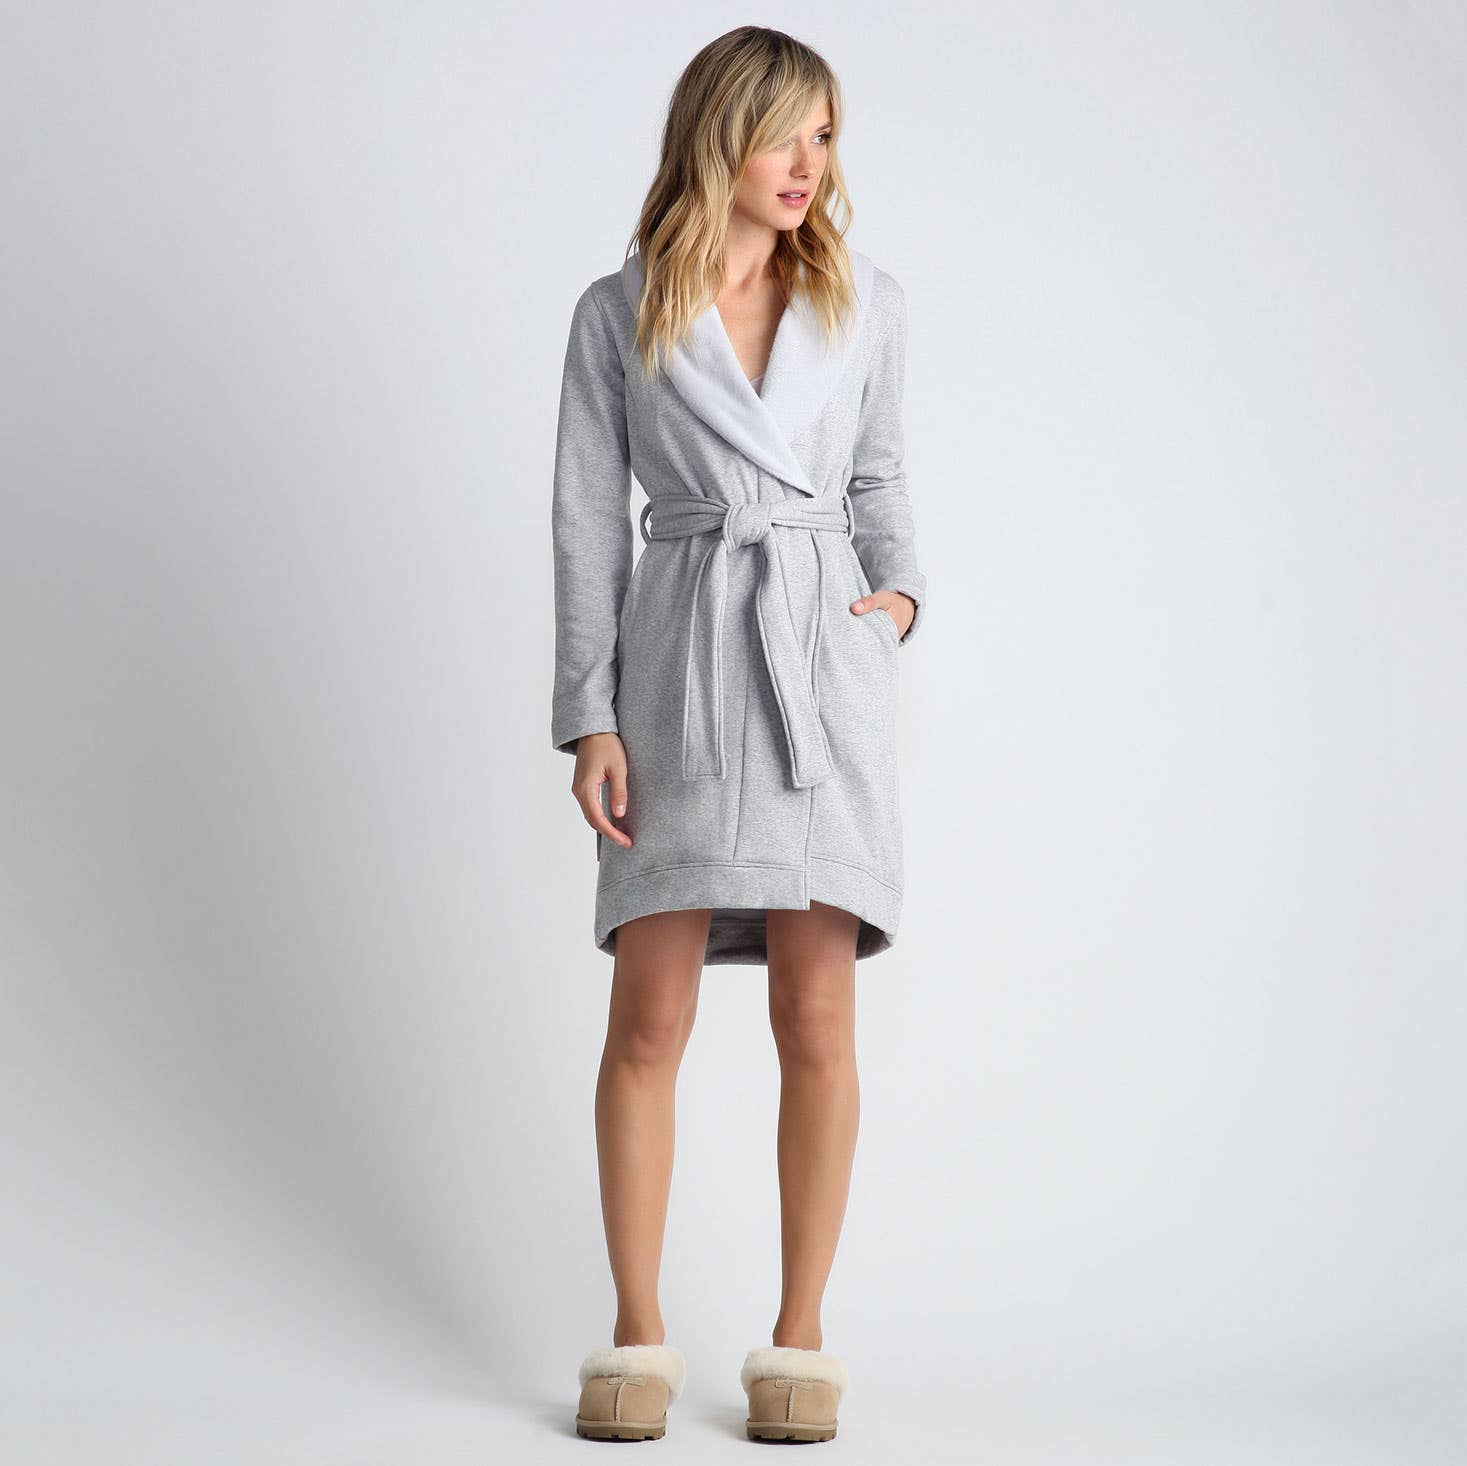 Ugg Blanche Robe at Linen Chest cf93fd215